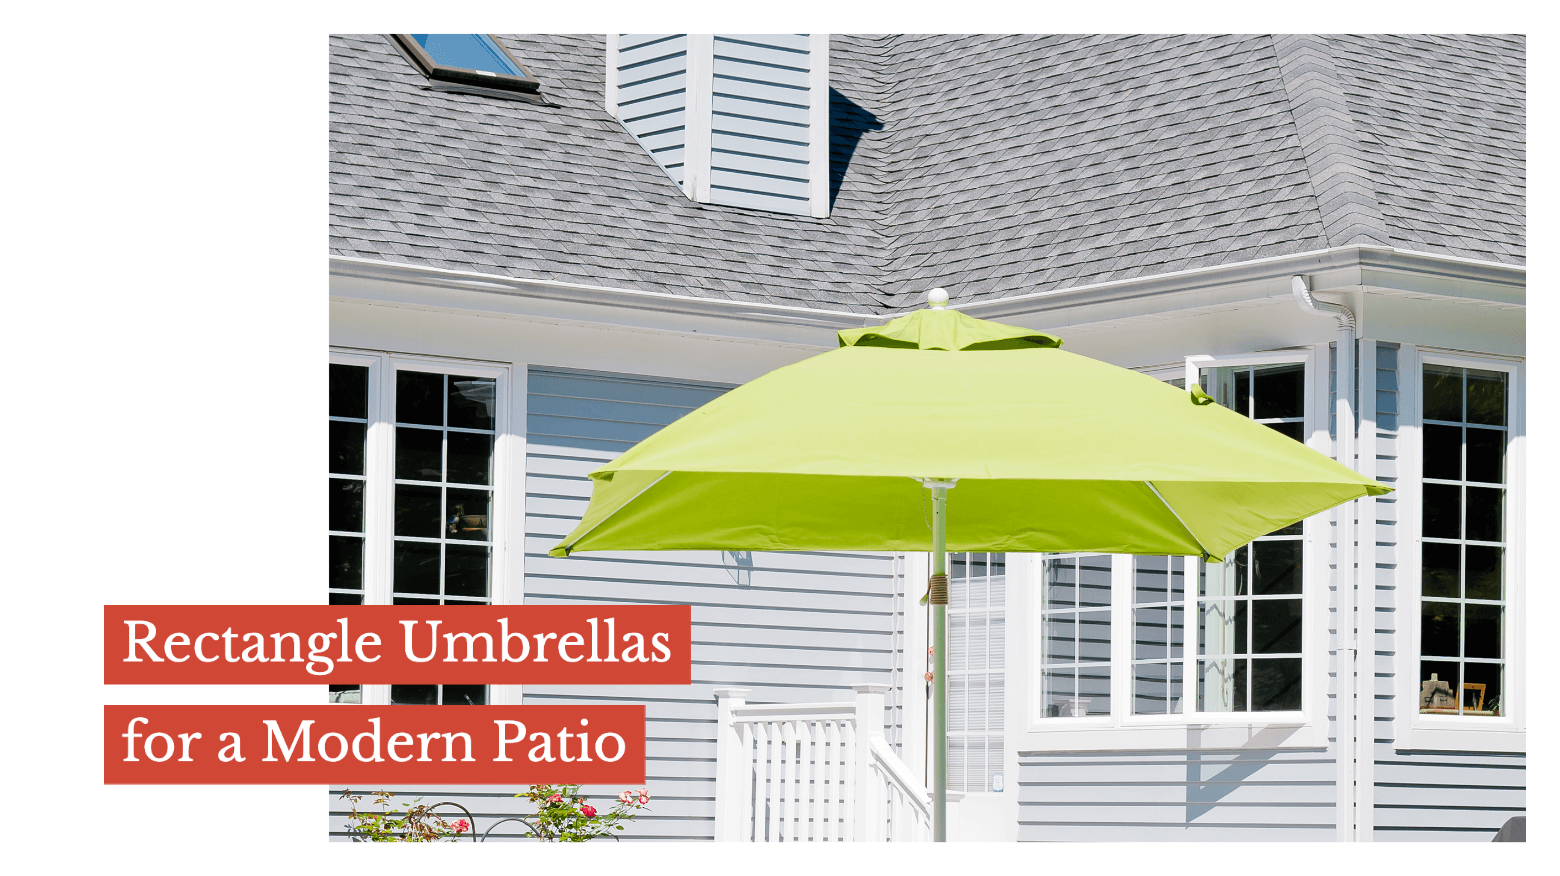 Rectangle Umbrellas for a Modern Patio